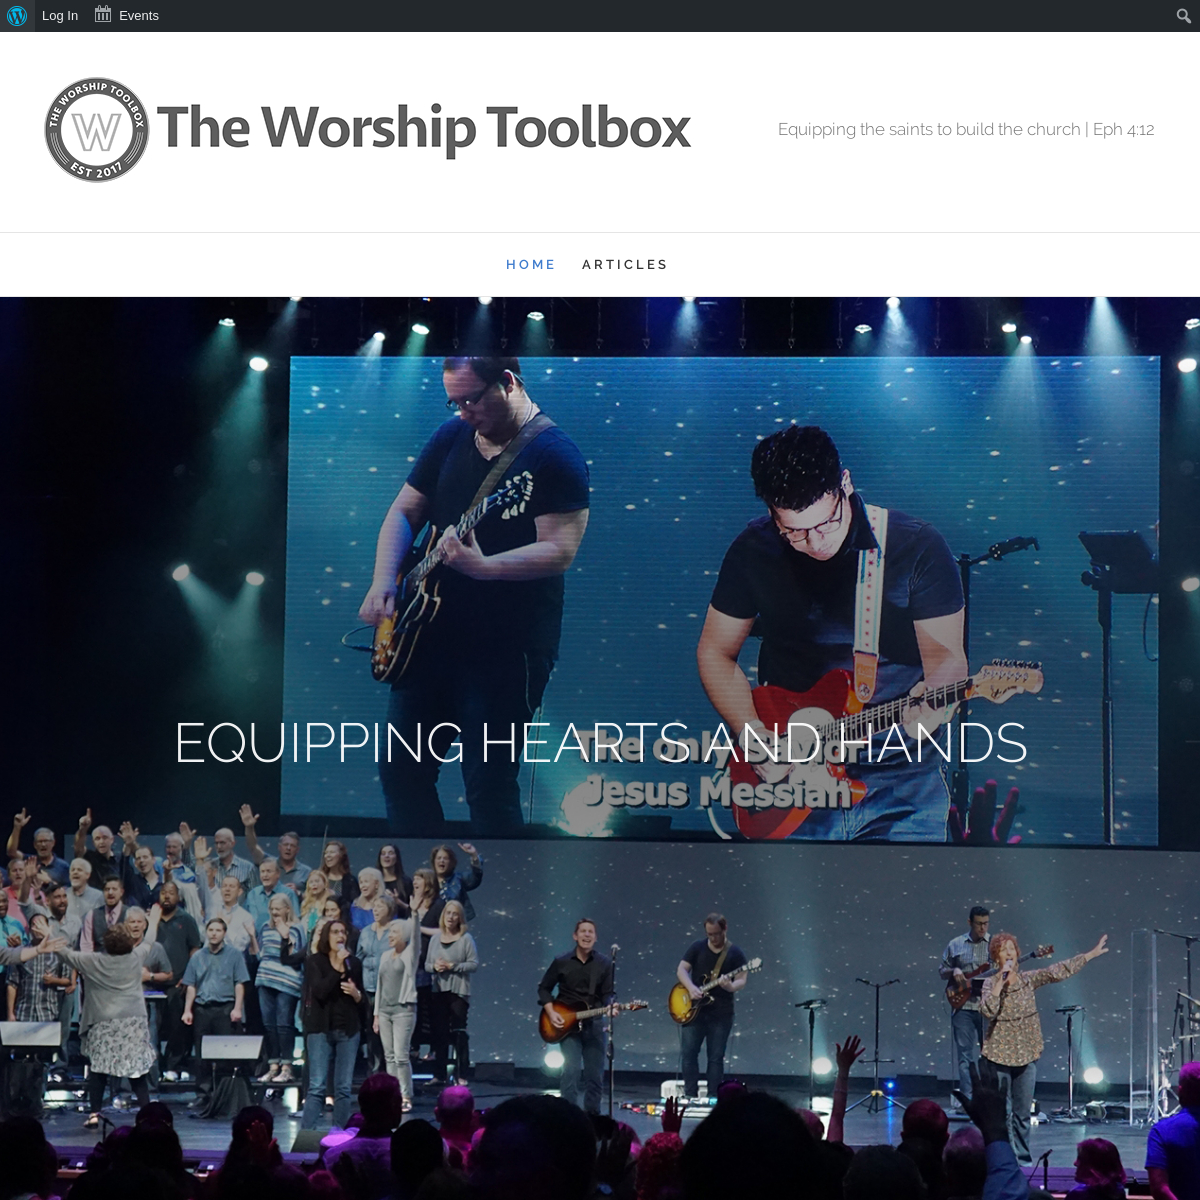 The Worship Toolbox – Equipping the saints to build the church.